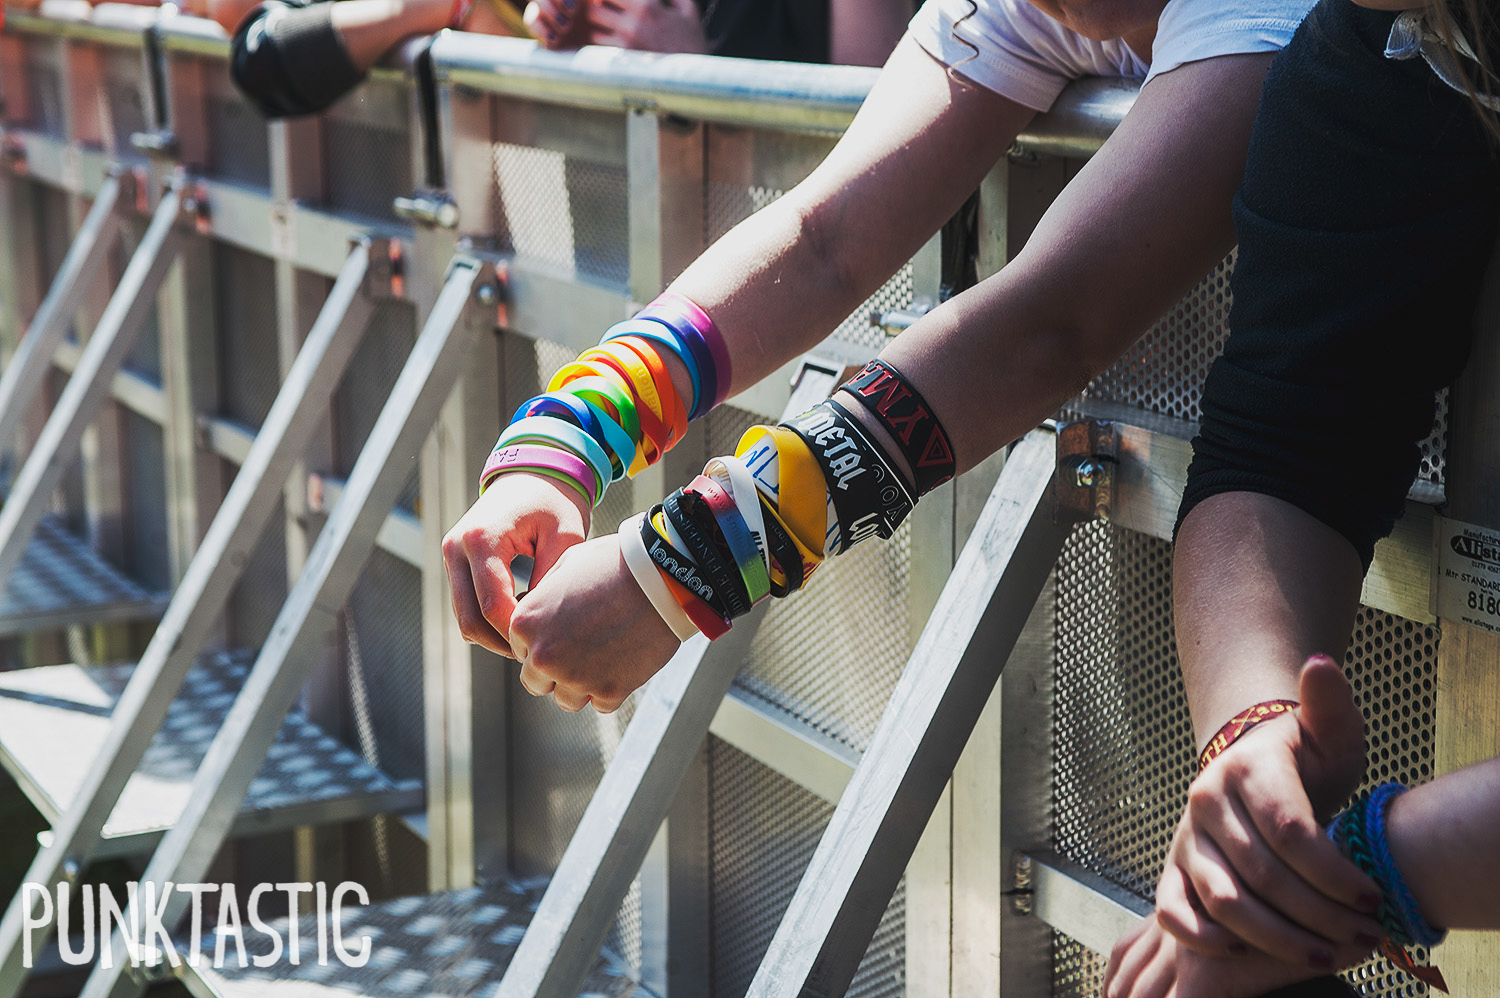 And so it begins.... ALL OF THE WRISTBANDS. A wristband rainbow.